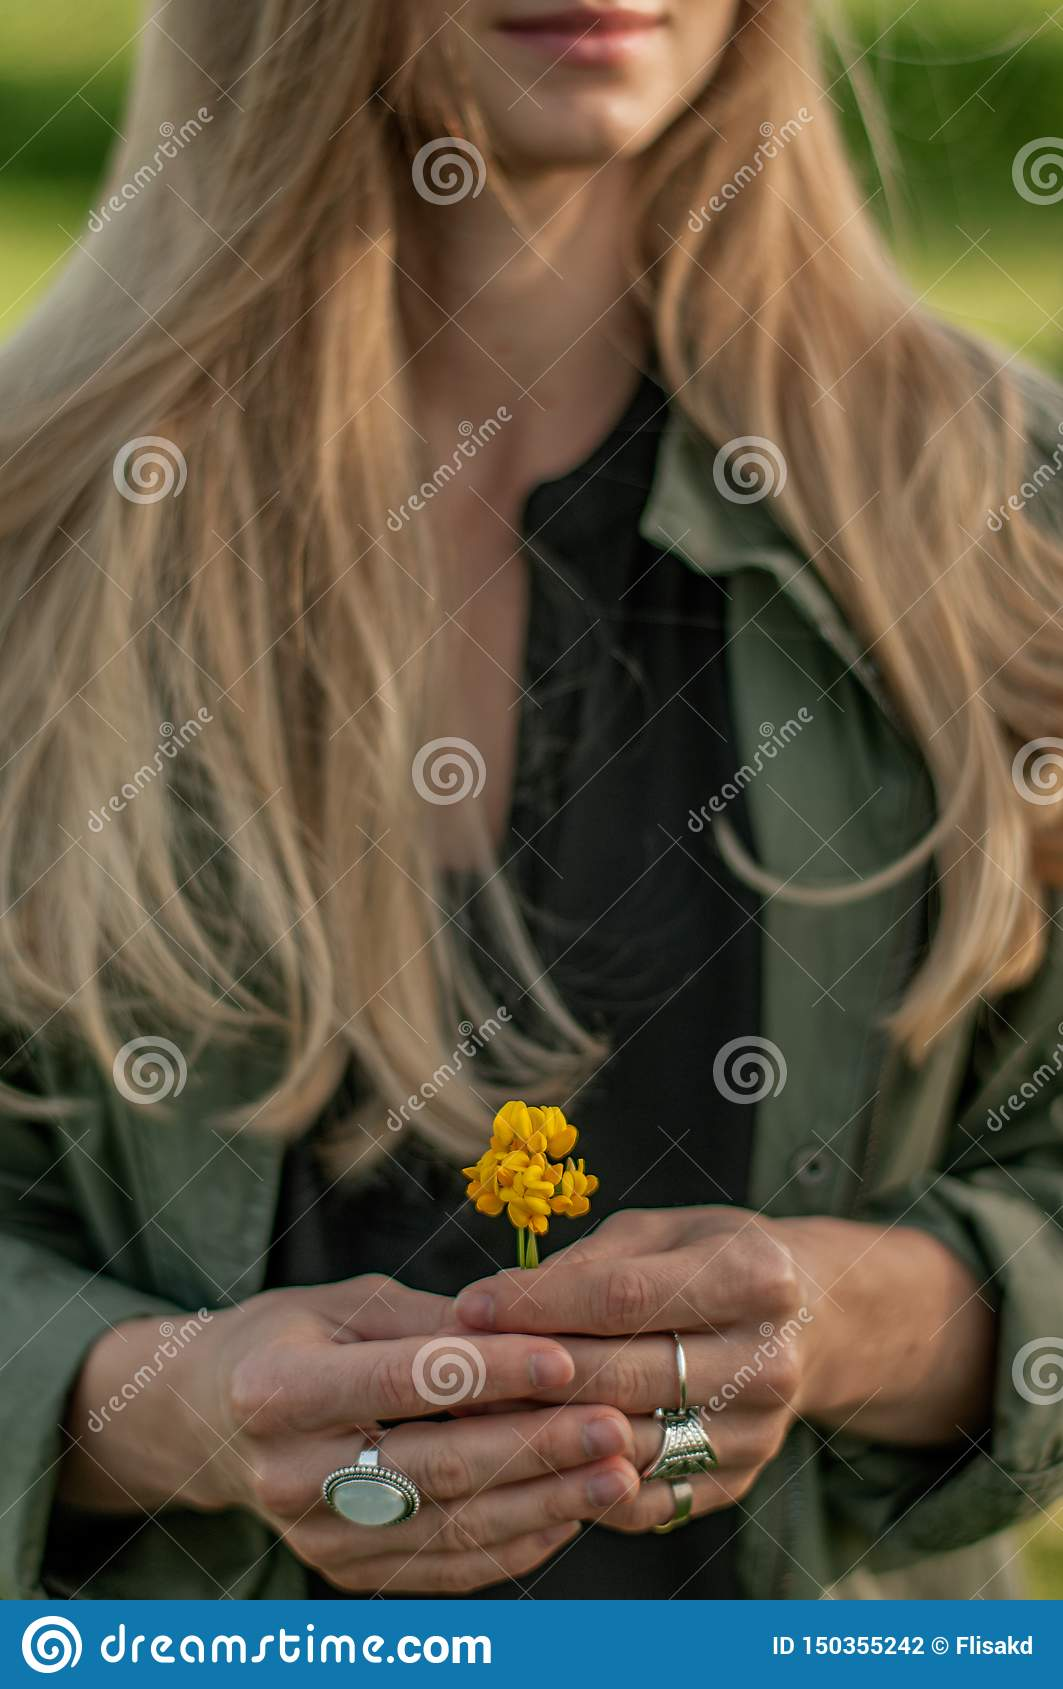 Beautiful woman with long hair holding flower. Hands with rings stylish boho accessories. No focus